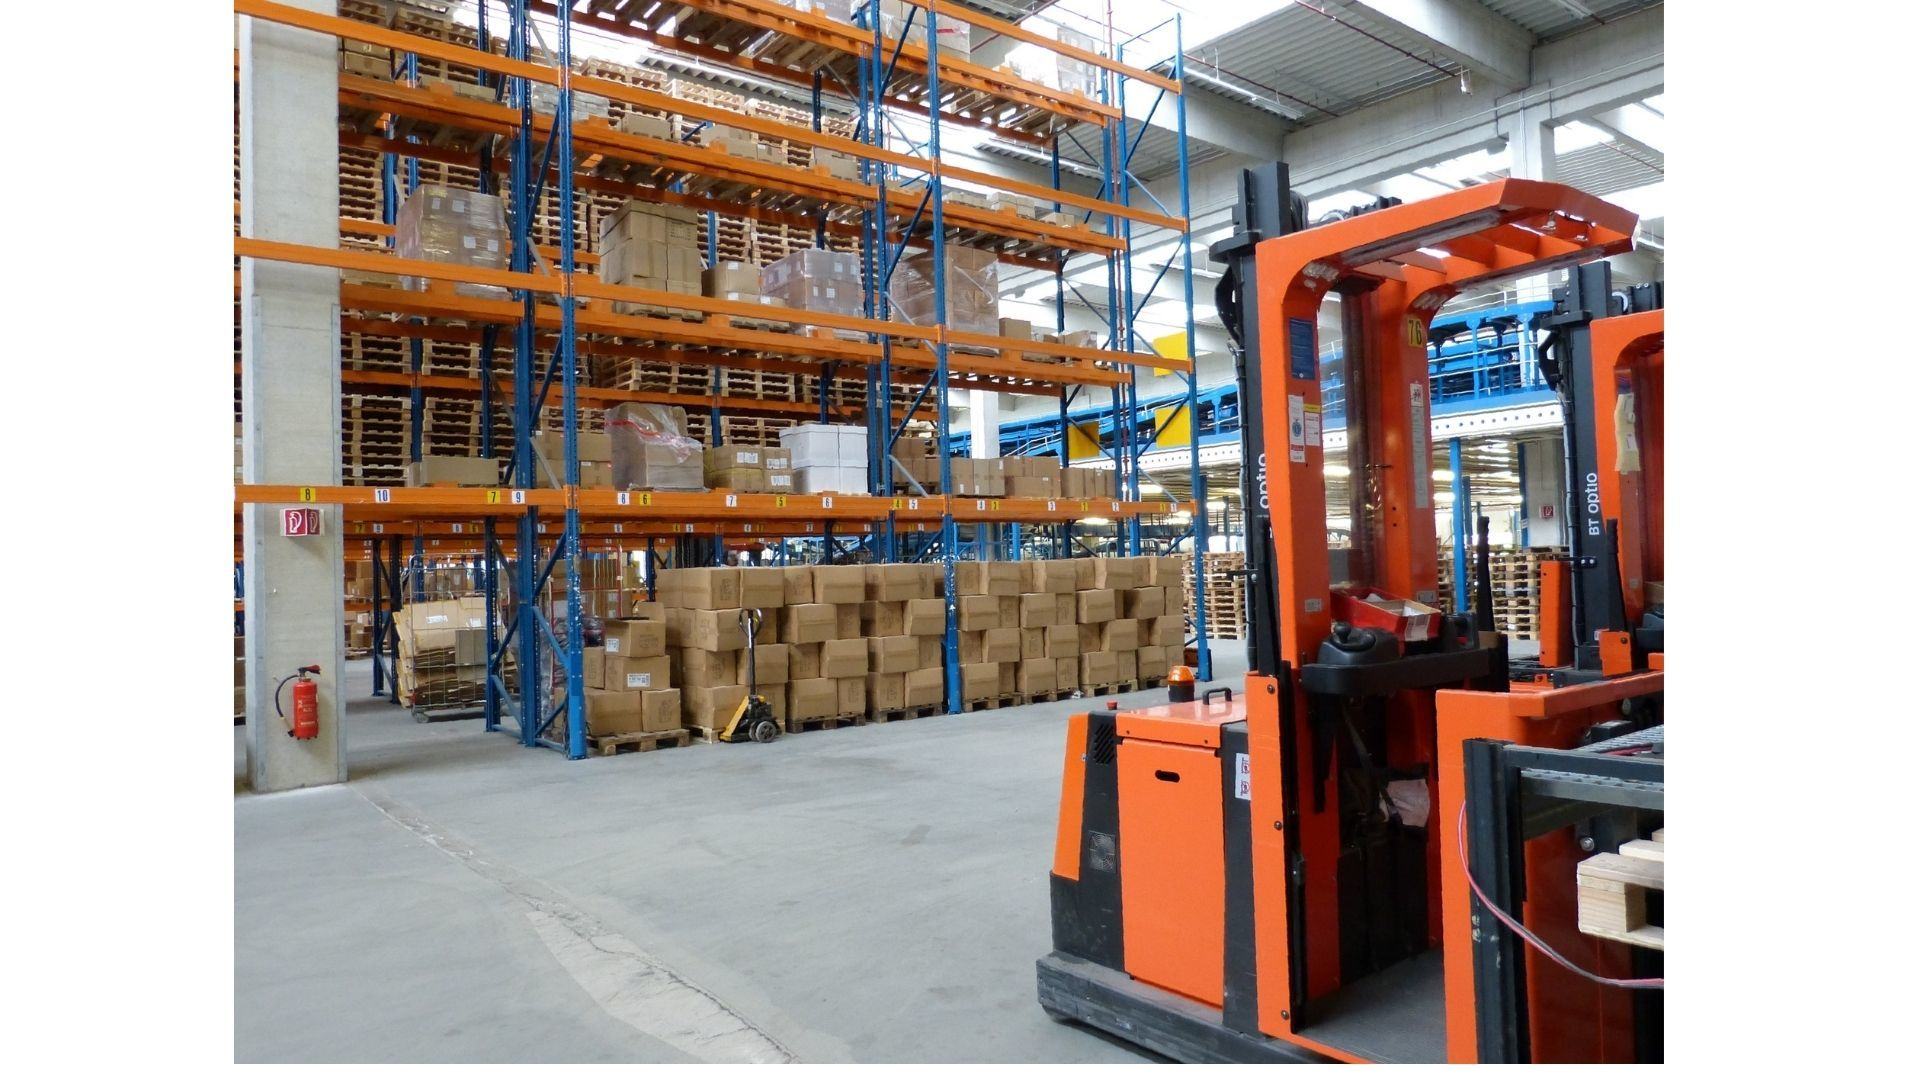 【Aichi, Toyohashi】 Crawler belt assembly work in the warehouse